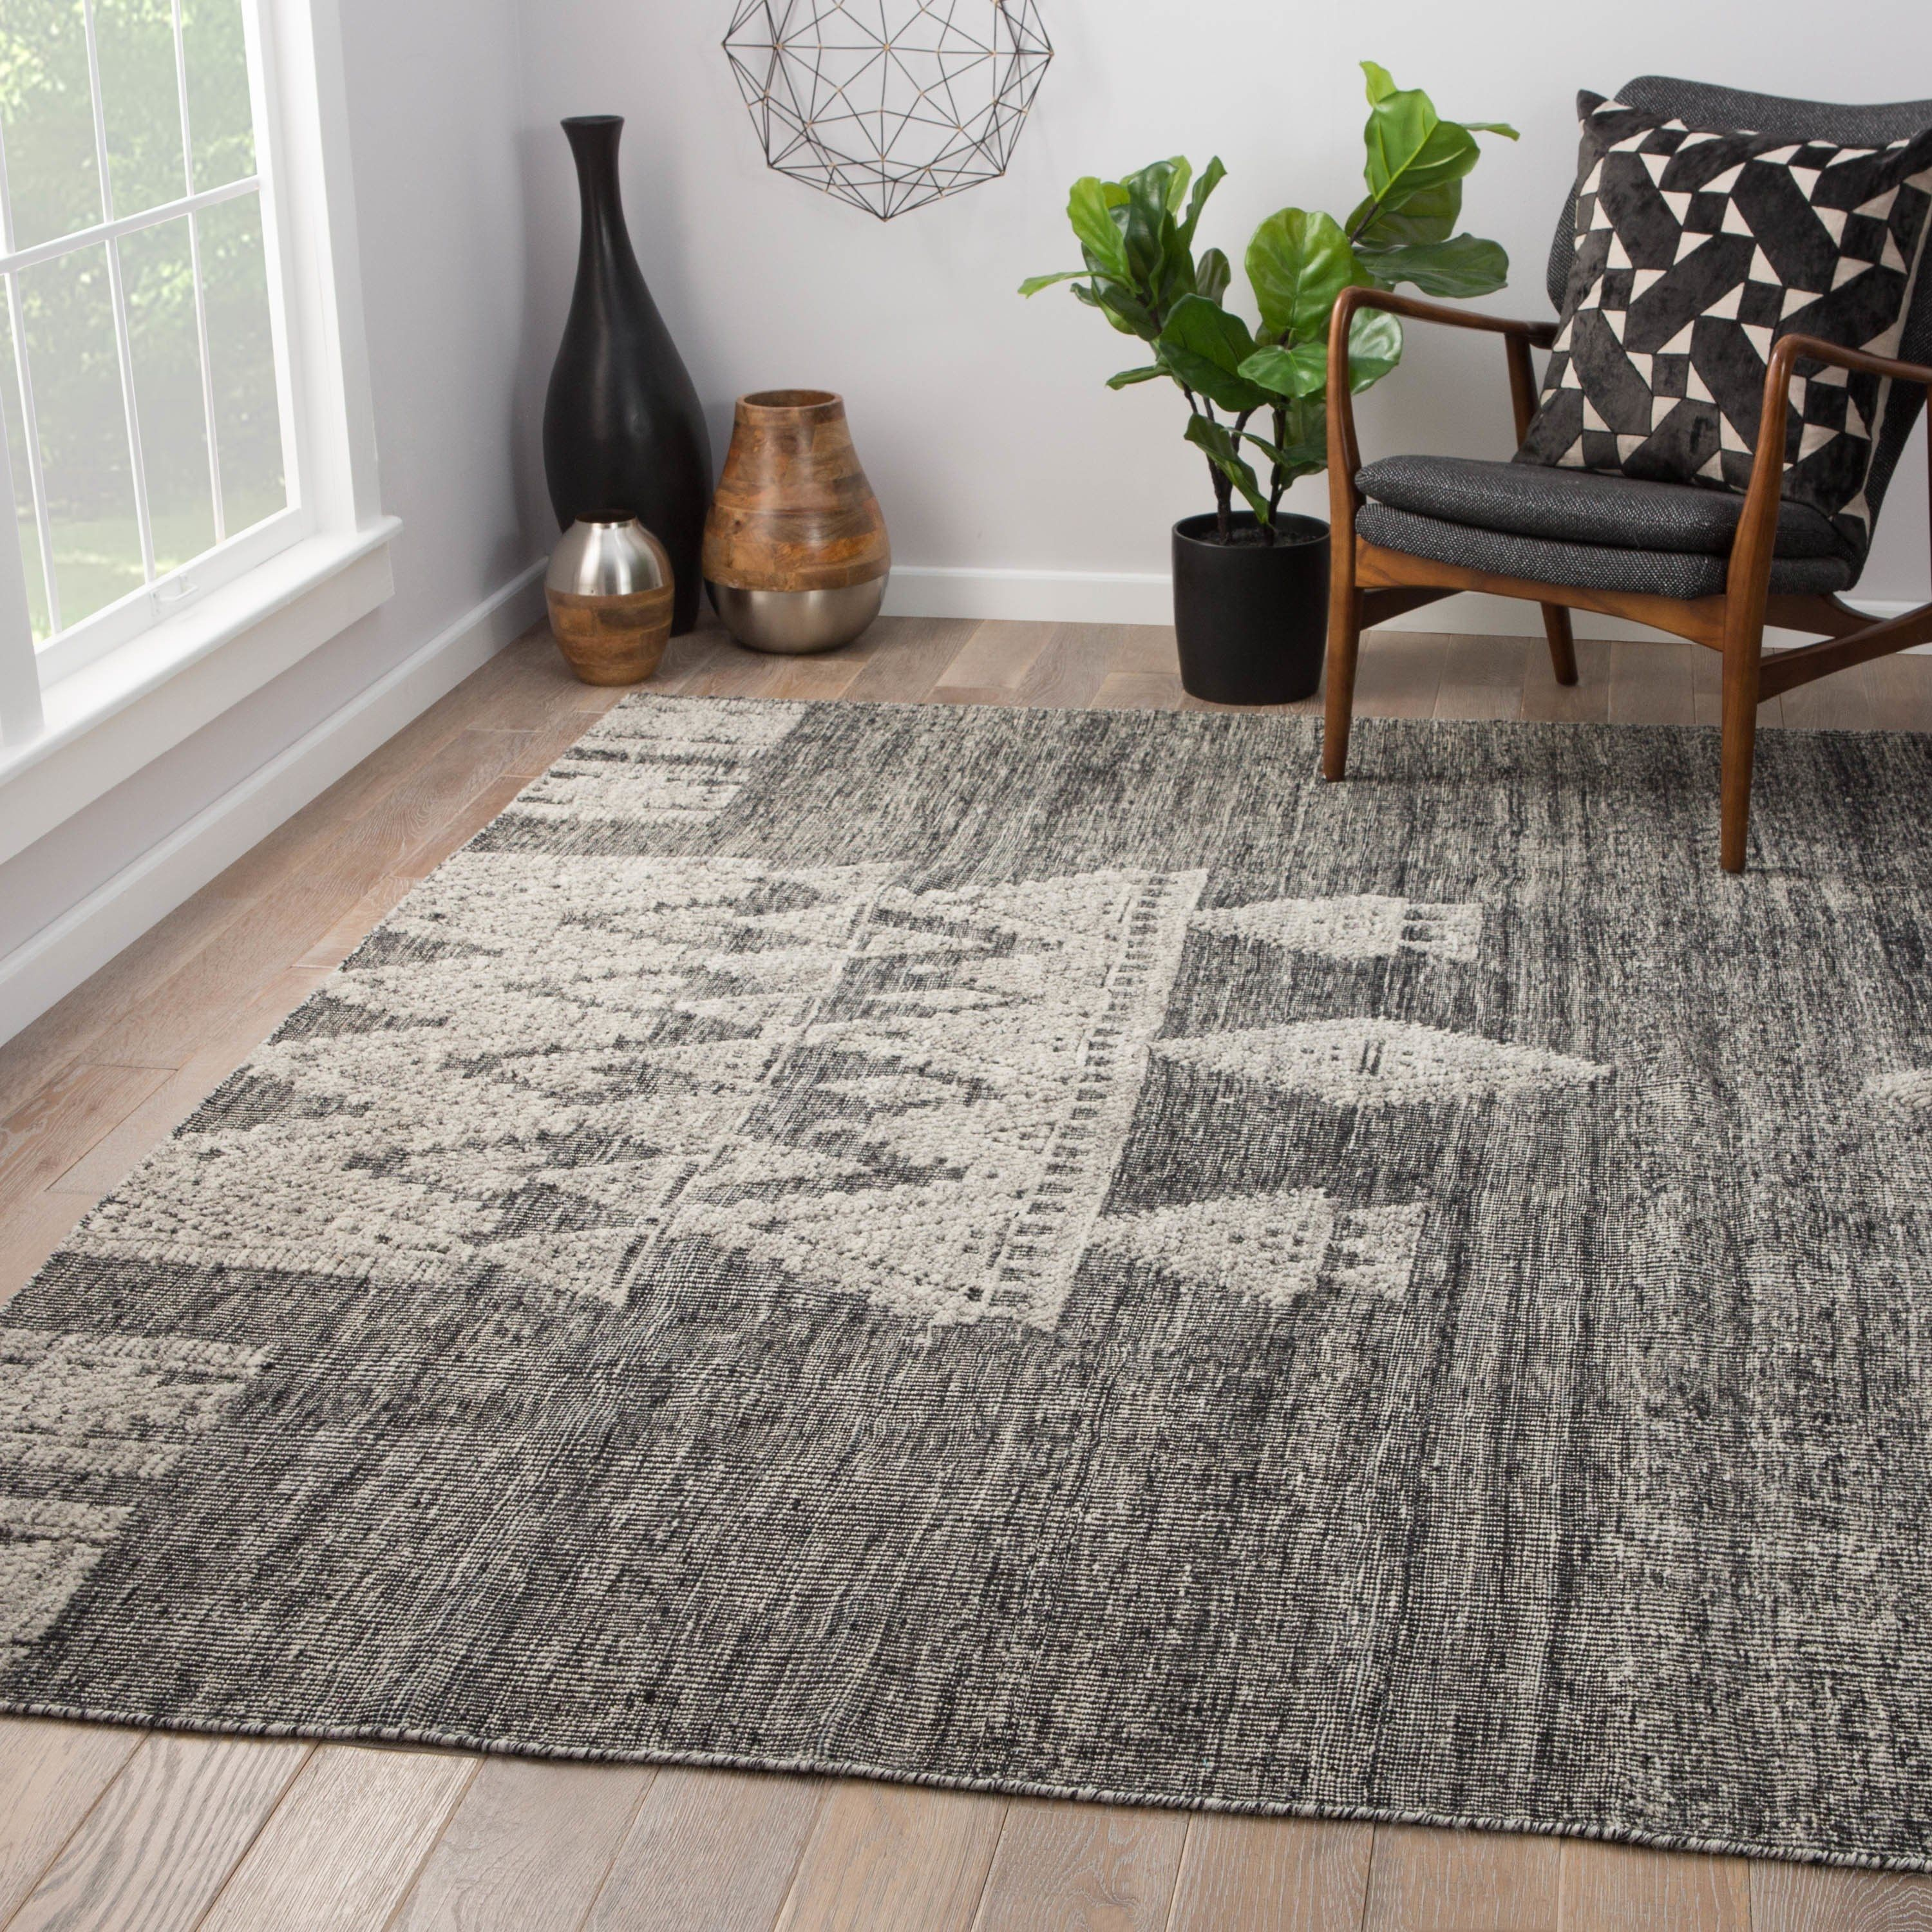 Ailana Hand Knotted Geometric Black Ivory Area Rug 9 X 12 8 10 X 11 9 Black Ivory 8 10 X 11 9 Juniper Home In 2019 Hand Knotted Rugs Rugs Area Rugs